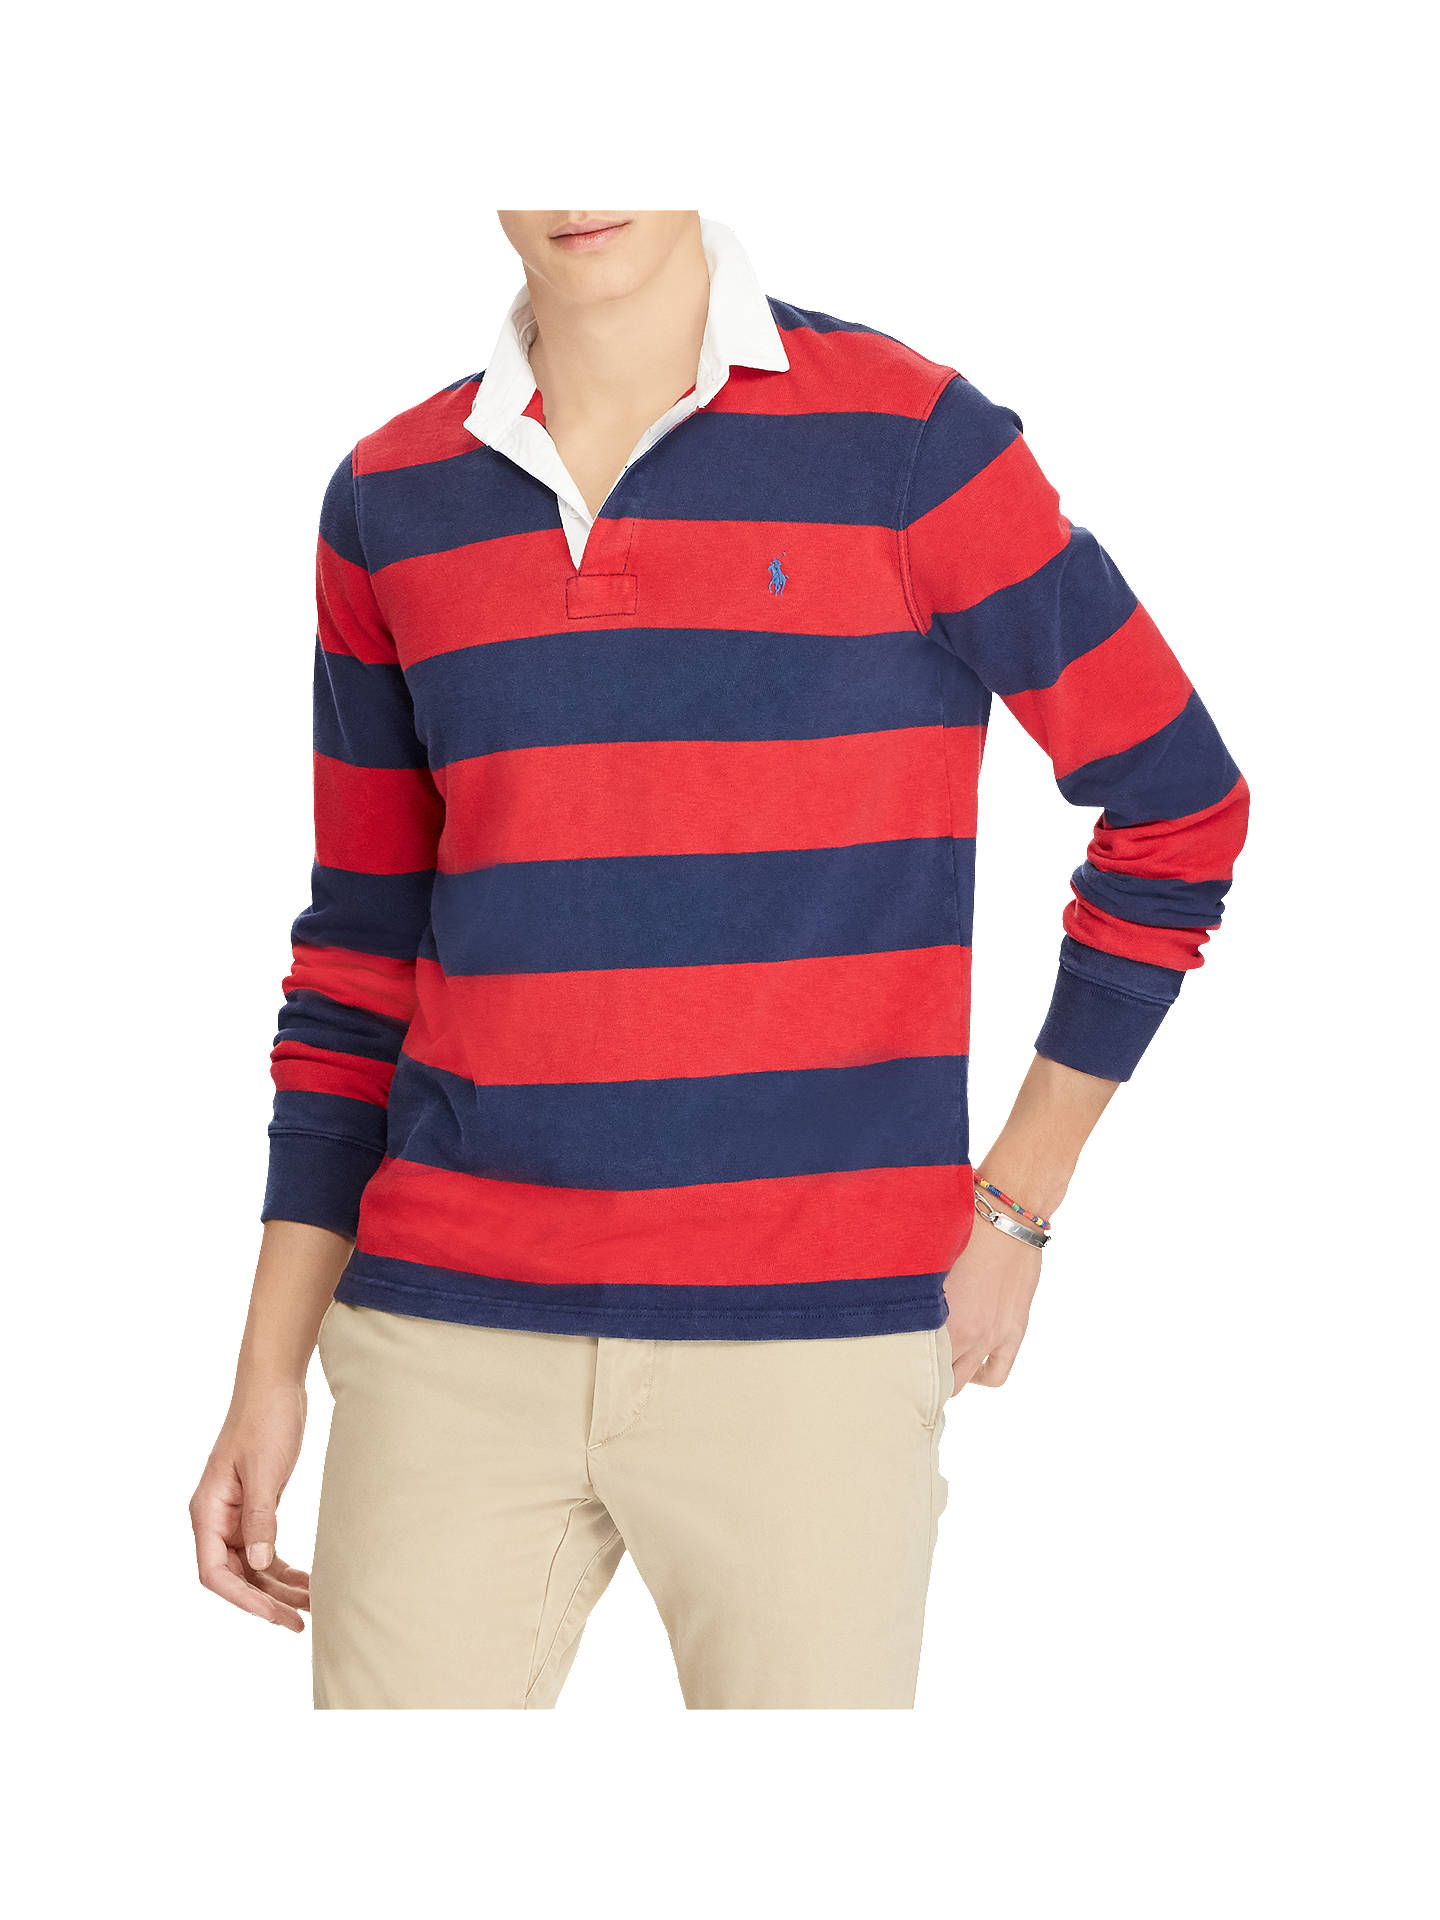 Polo Ralph Lauren Men/'s Red//Navy Stripe Iconic Rugby Classic Fit Polo Shirt